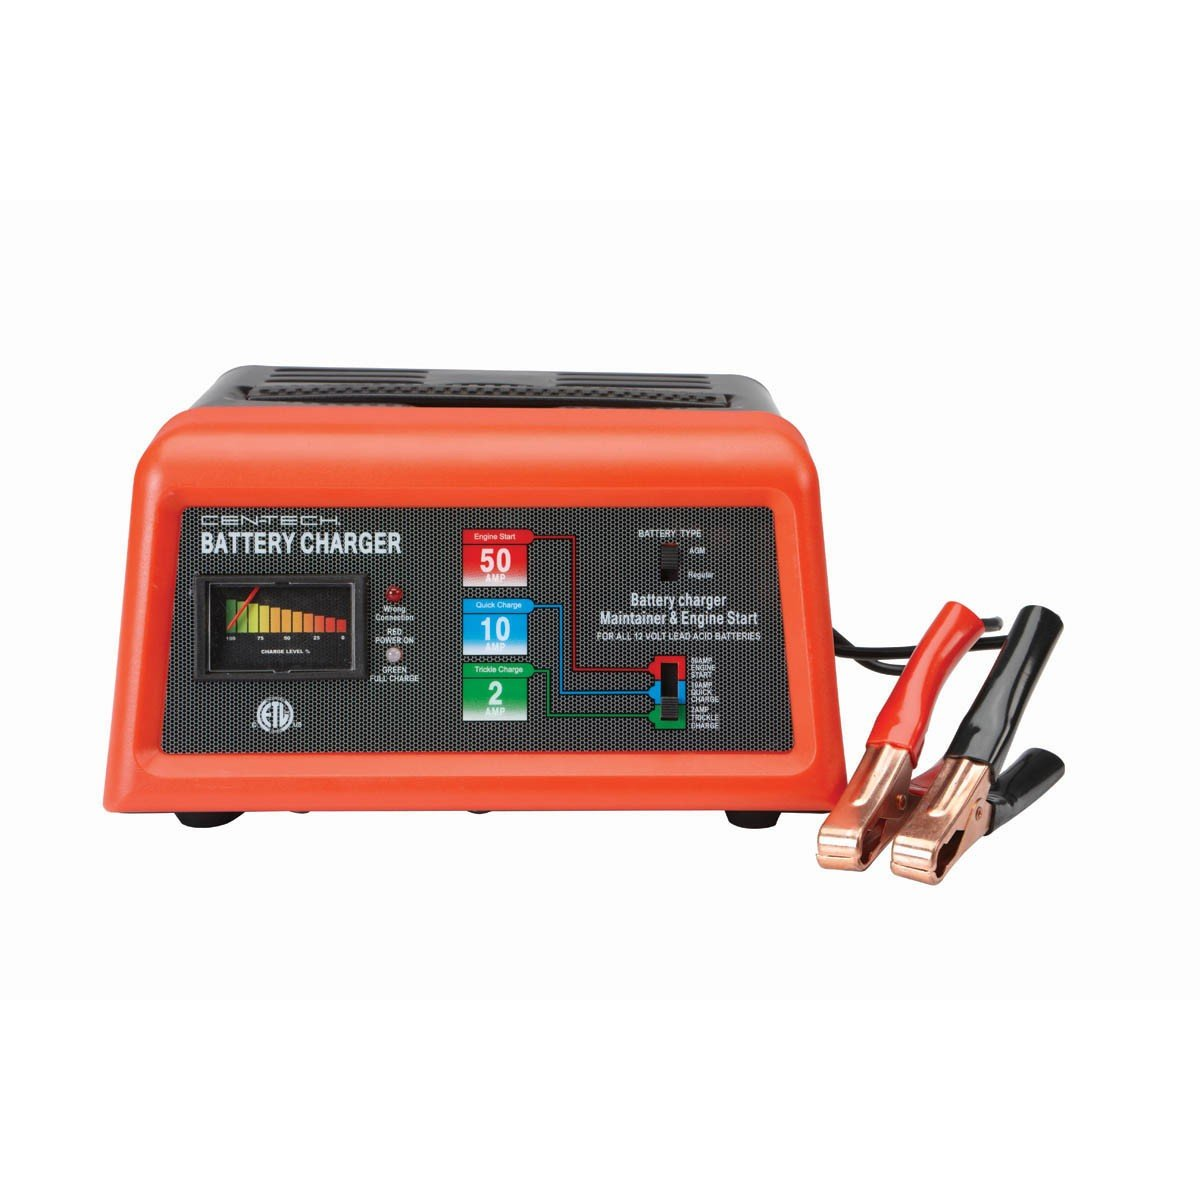 cen tech battery charger (well known brand) Battery Charger Parts List product focus cen tech 10 2 50 amp 12v manual charger